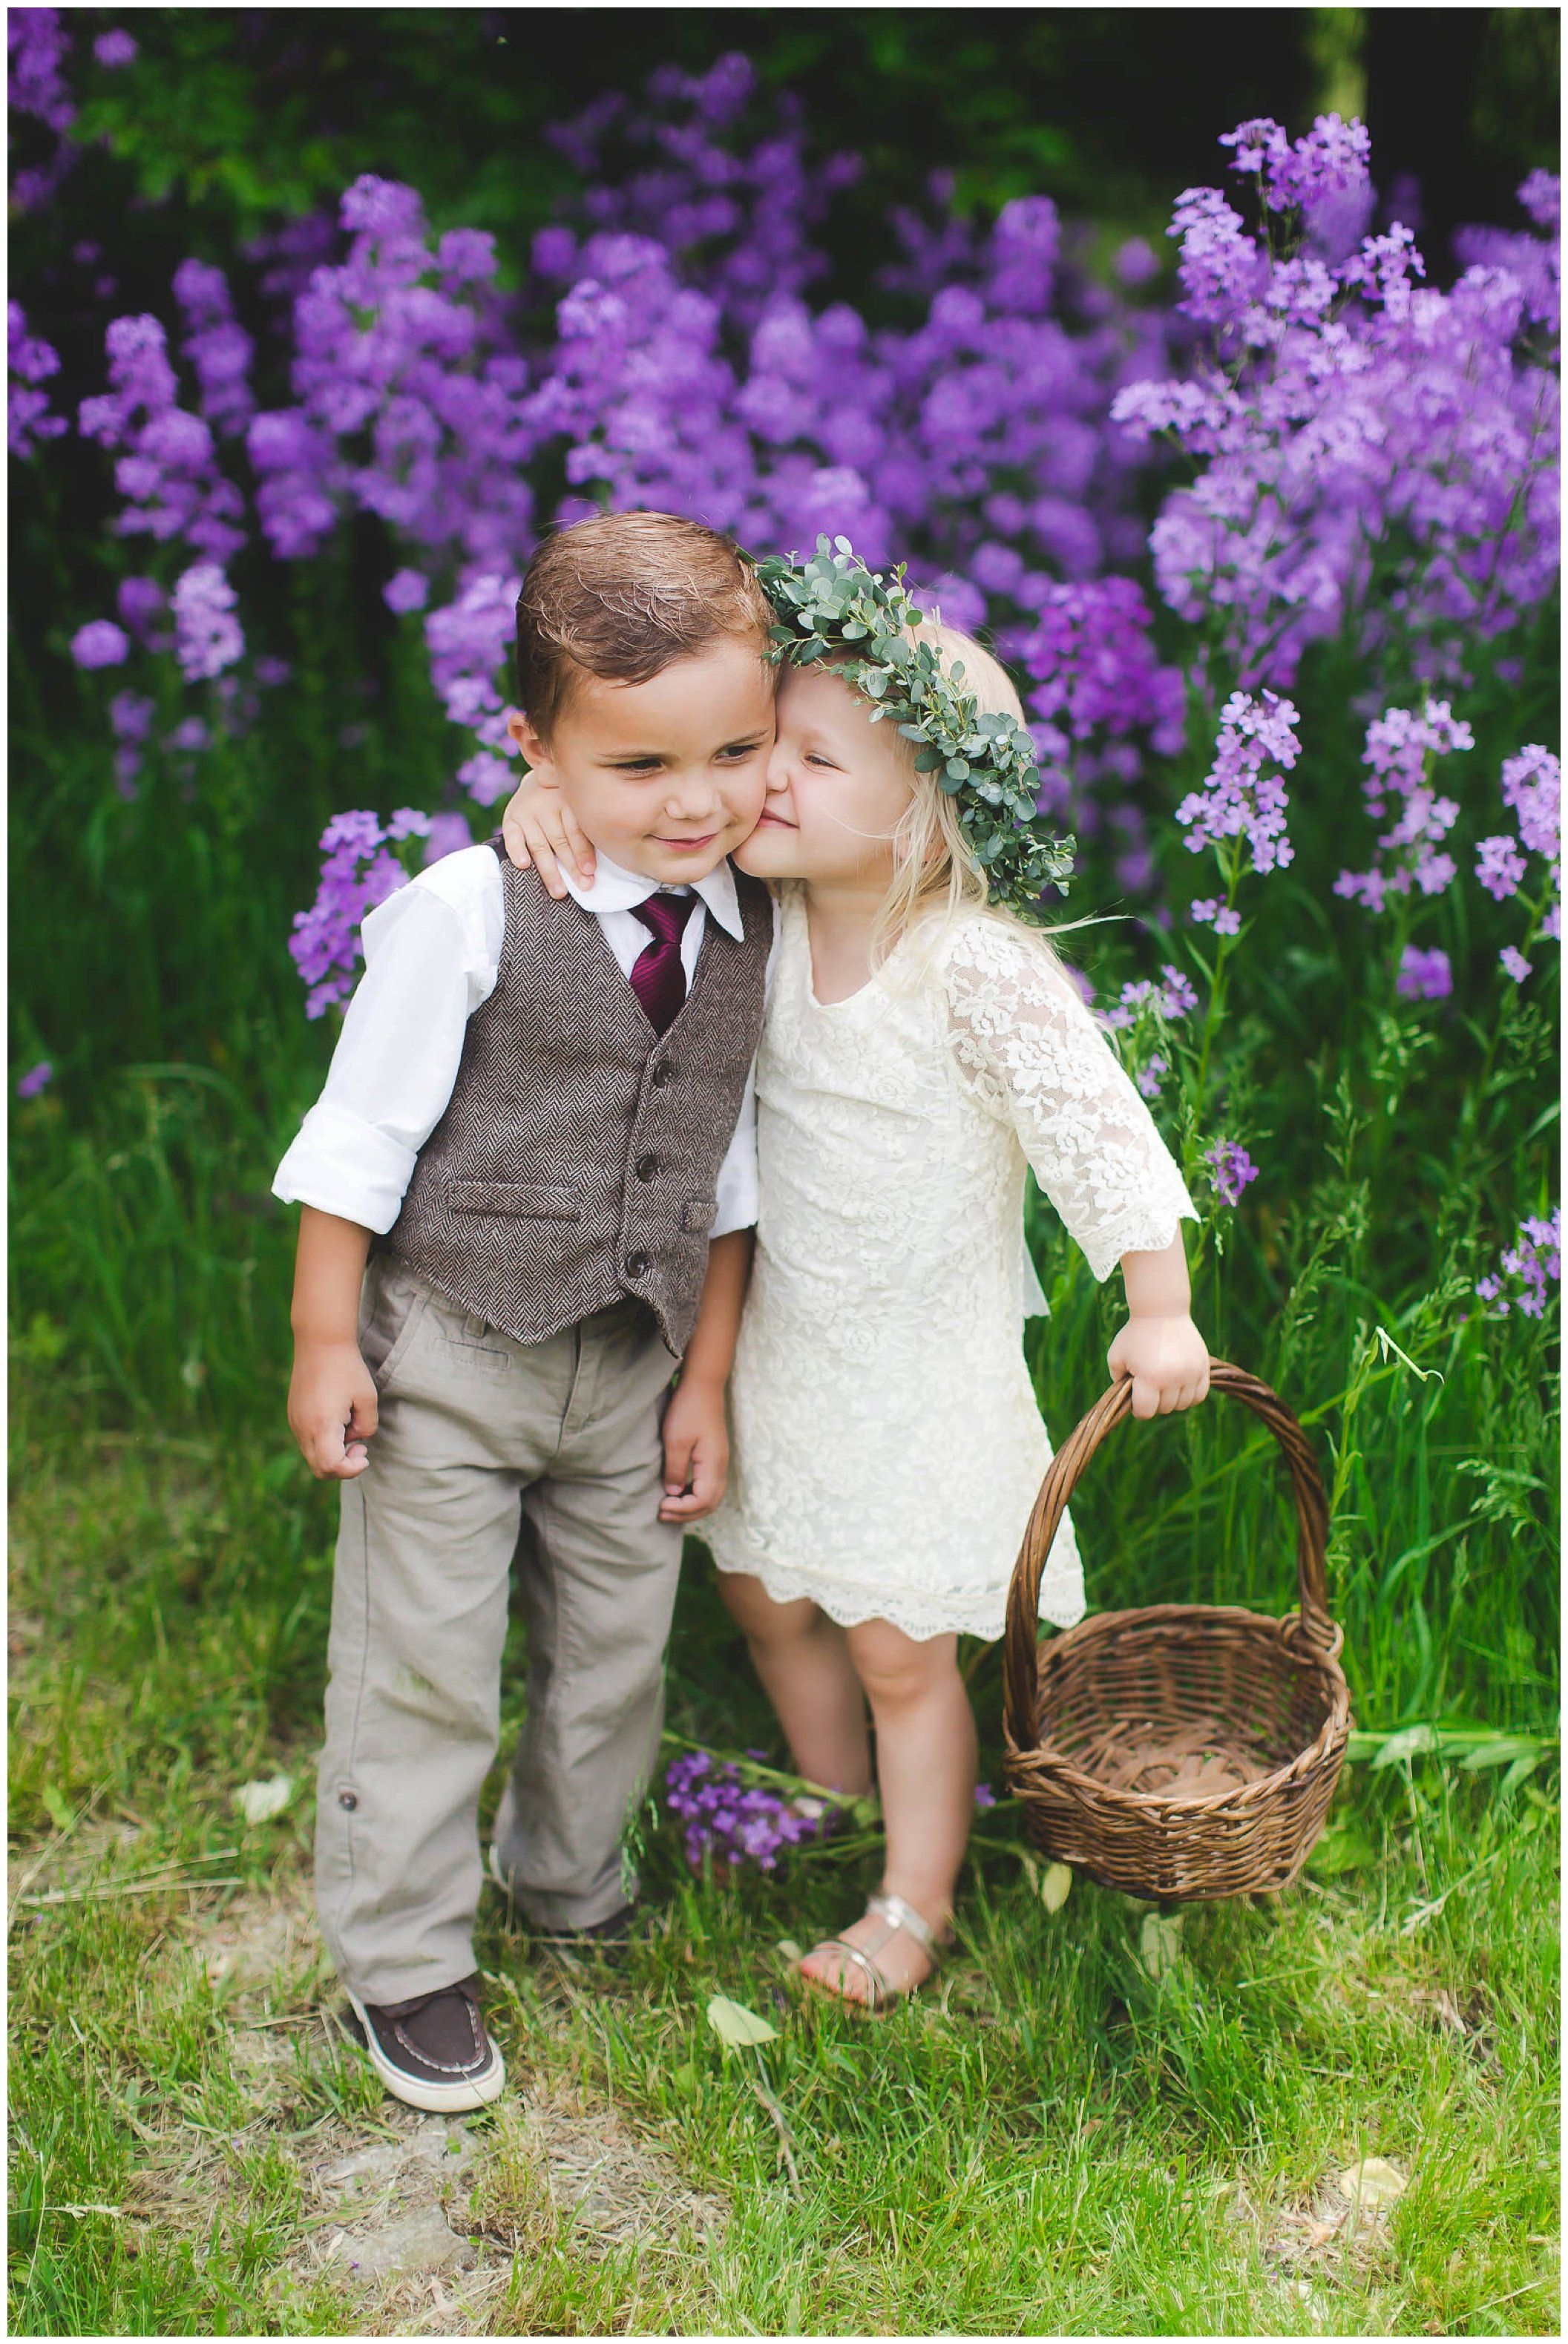 Young Romance between the flower girl and ring bearer! Adorable ...